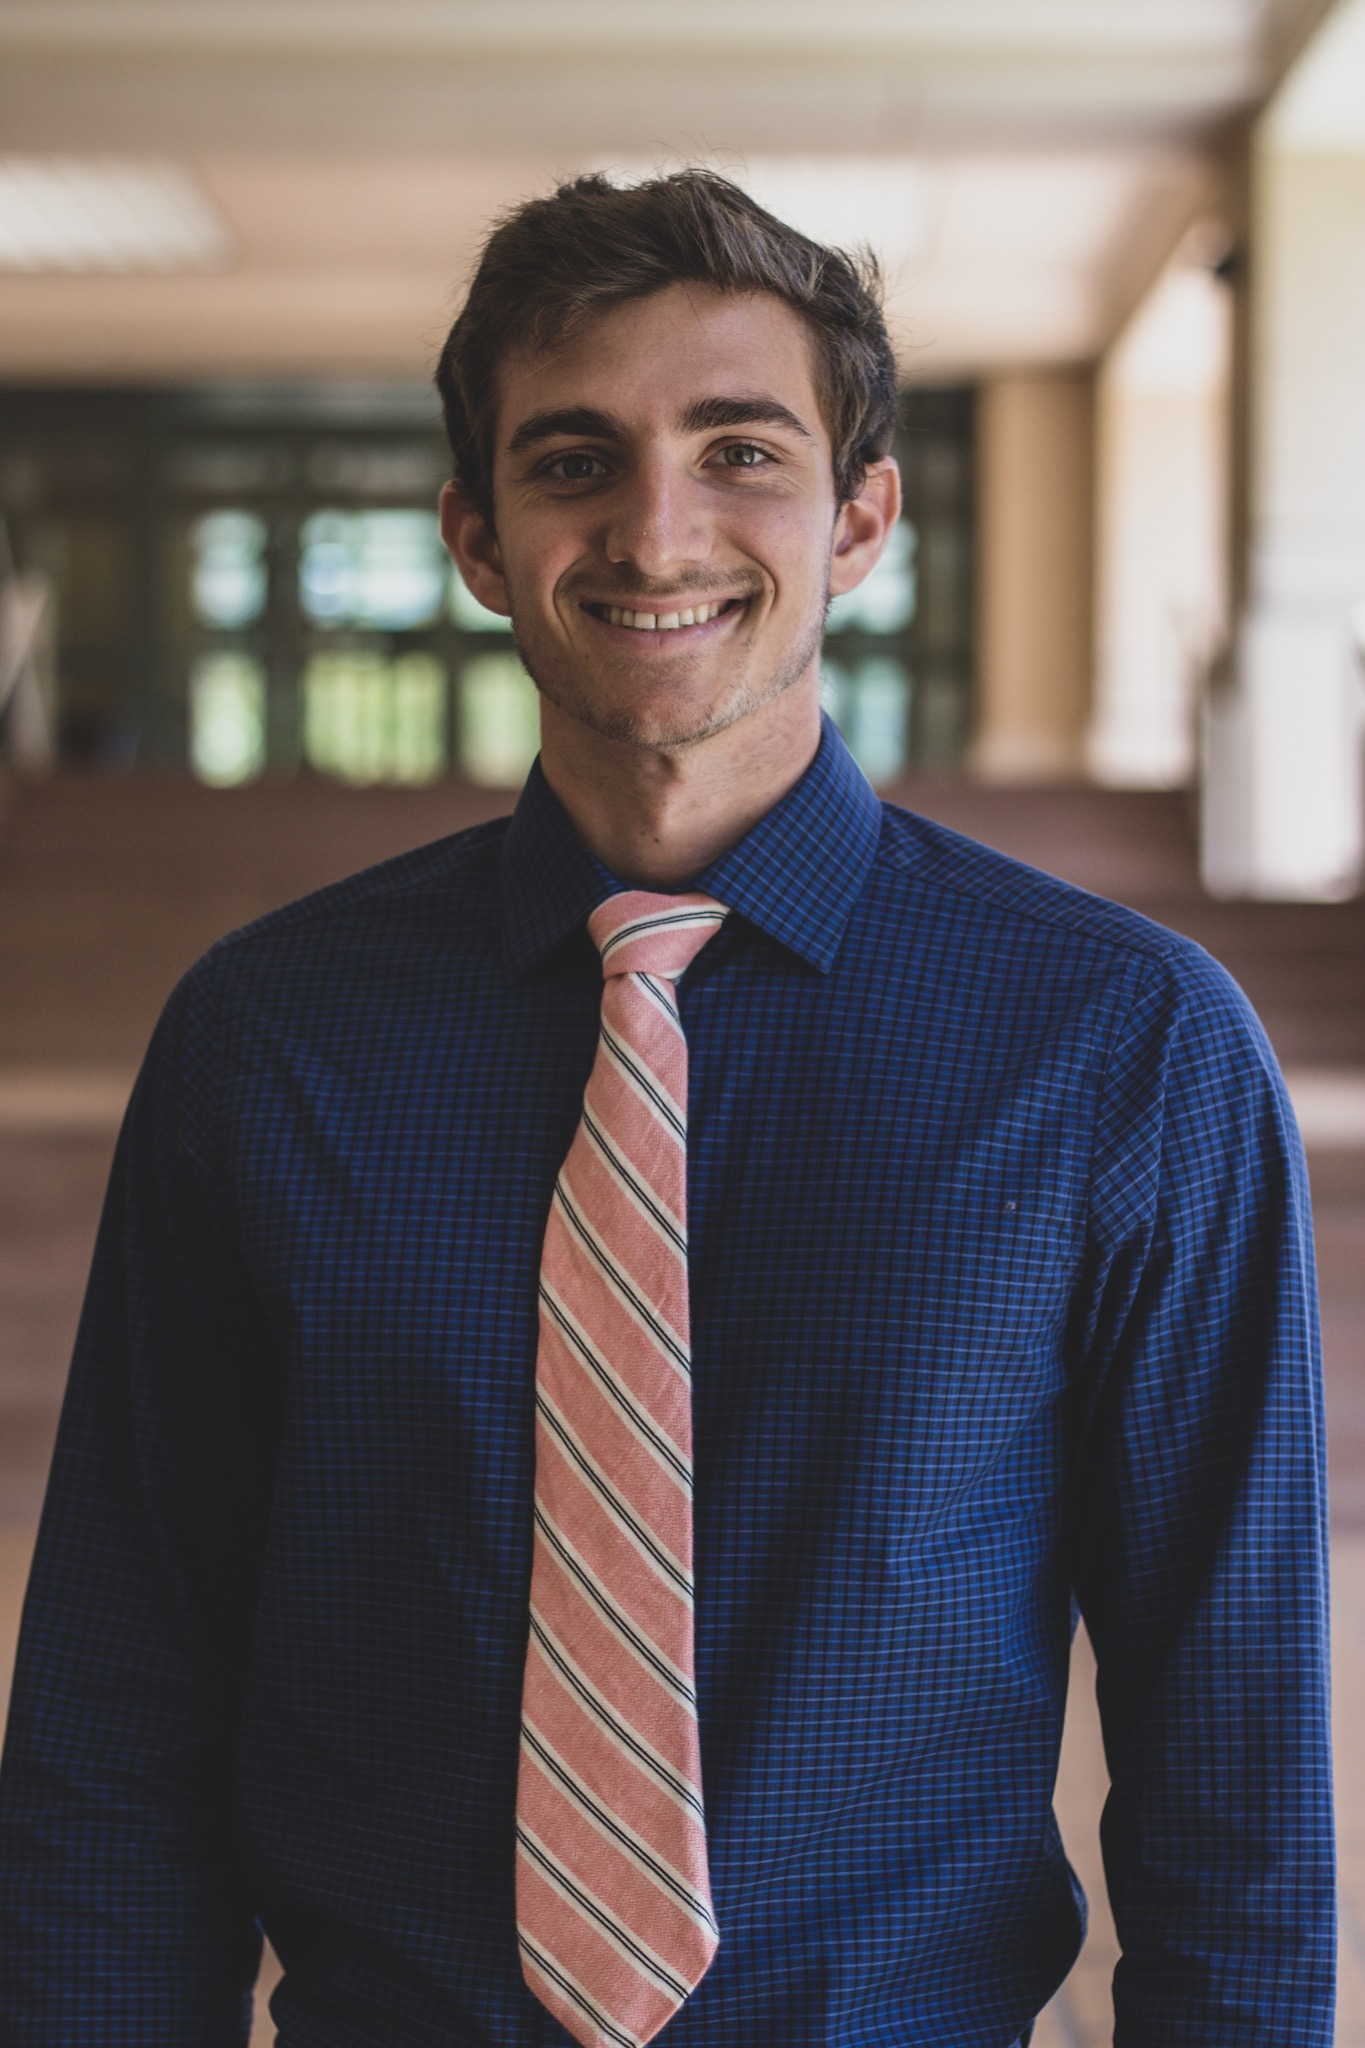 Adam Gockel  Director  I joined the CampPolyHack team to make connections and to collaborate with talented individuals.  I am on the Cal Poly Division I track and field team where I do the decathlon, javelin and pole vault.   LinkedIn